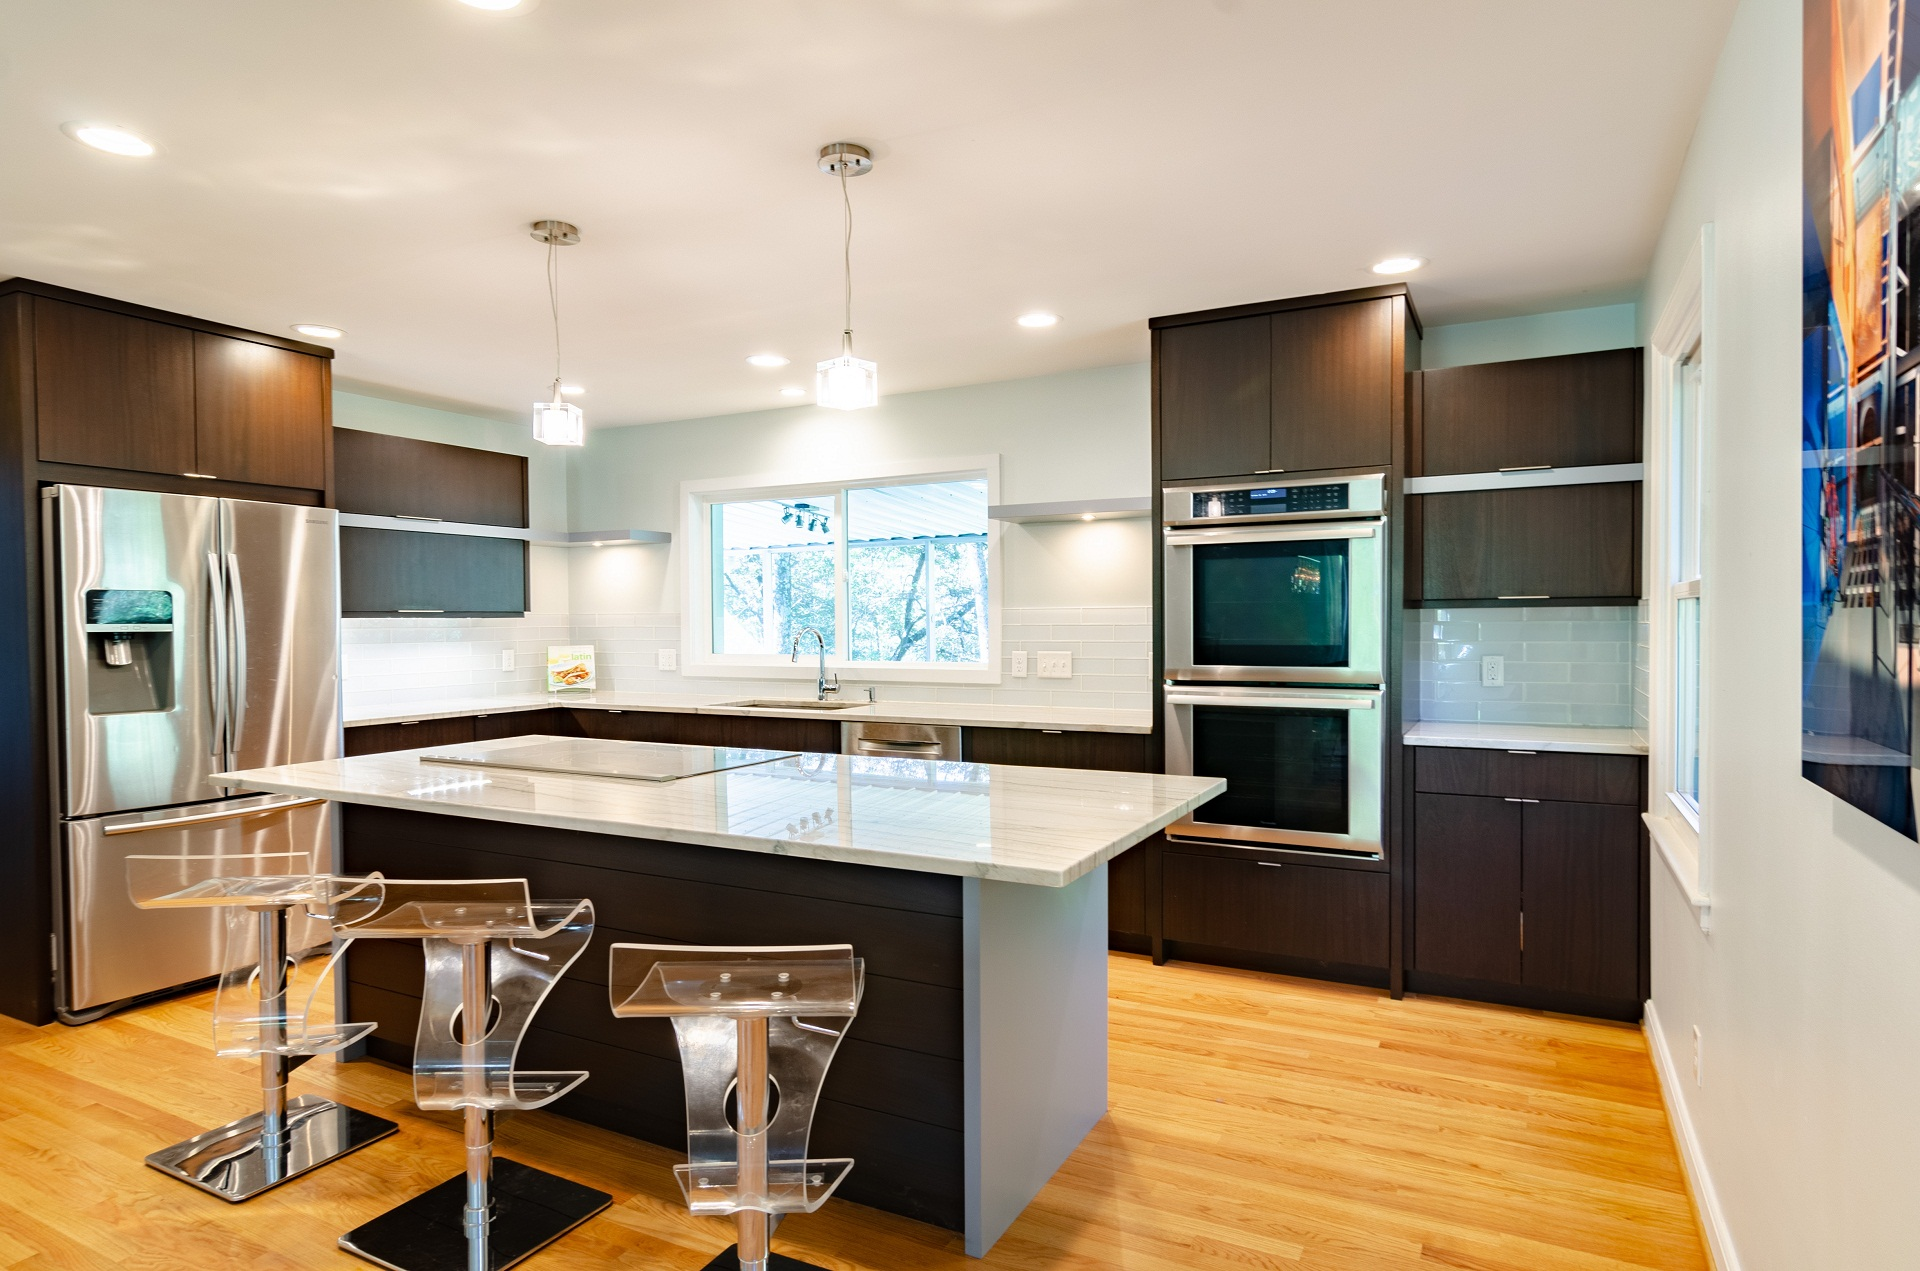 7 Reasons Why Should Renovate Your Home Sweet Home